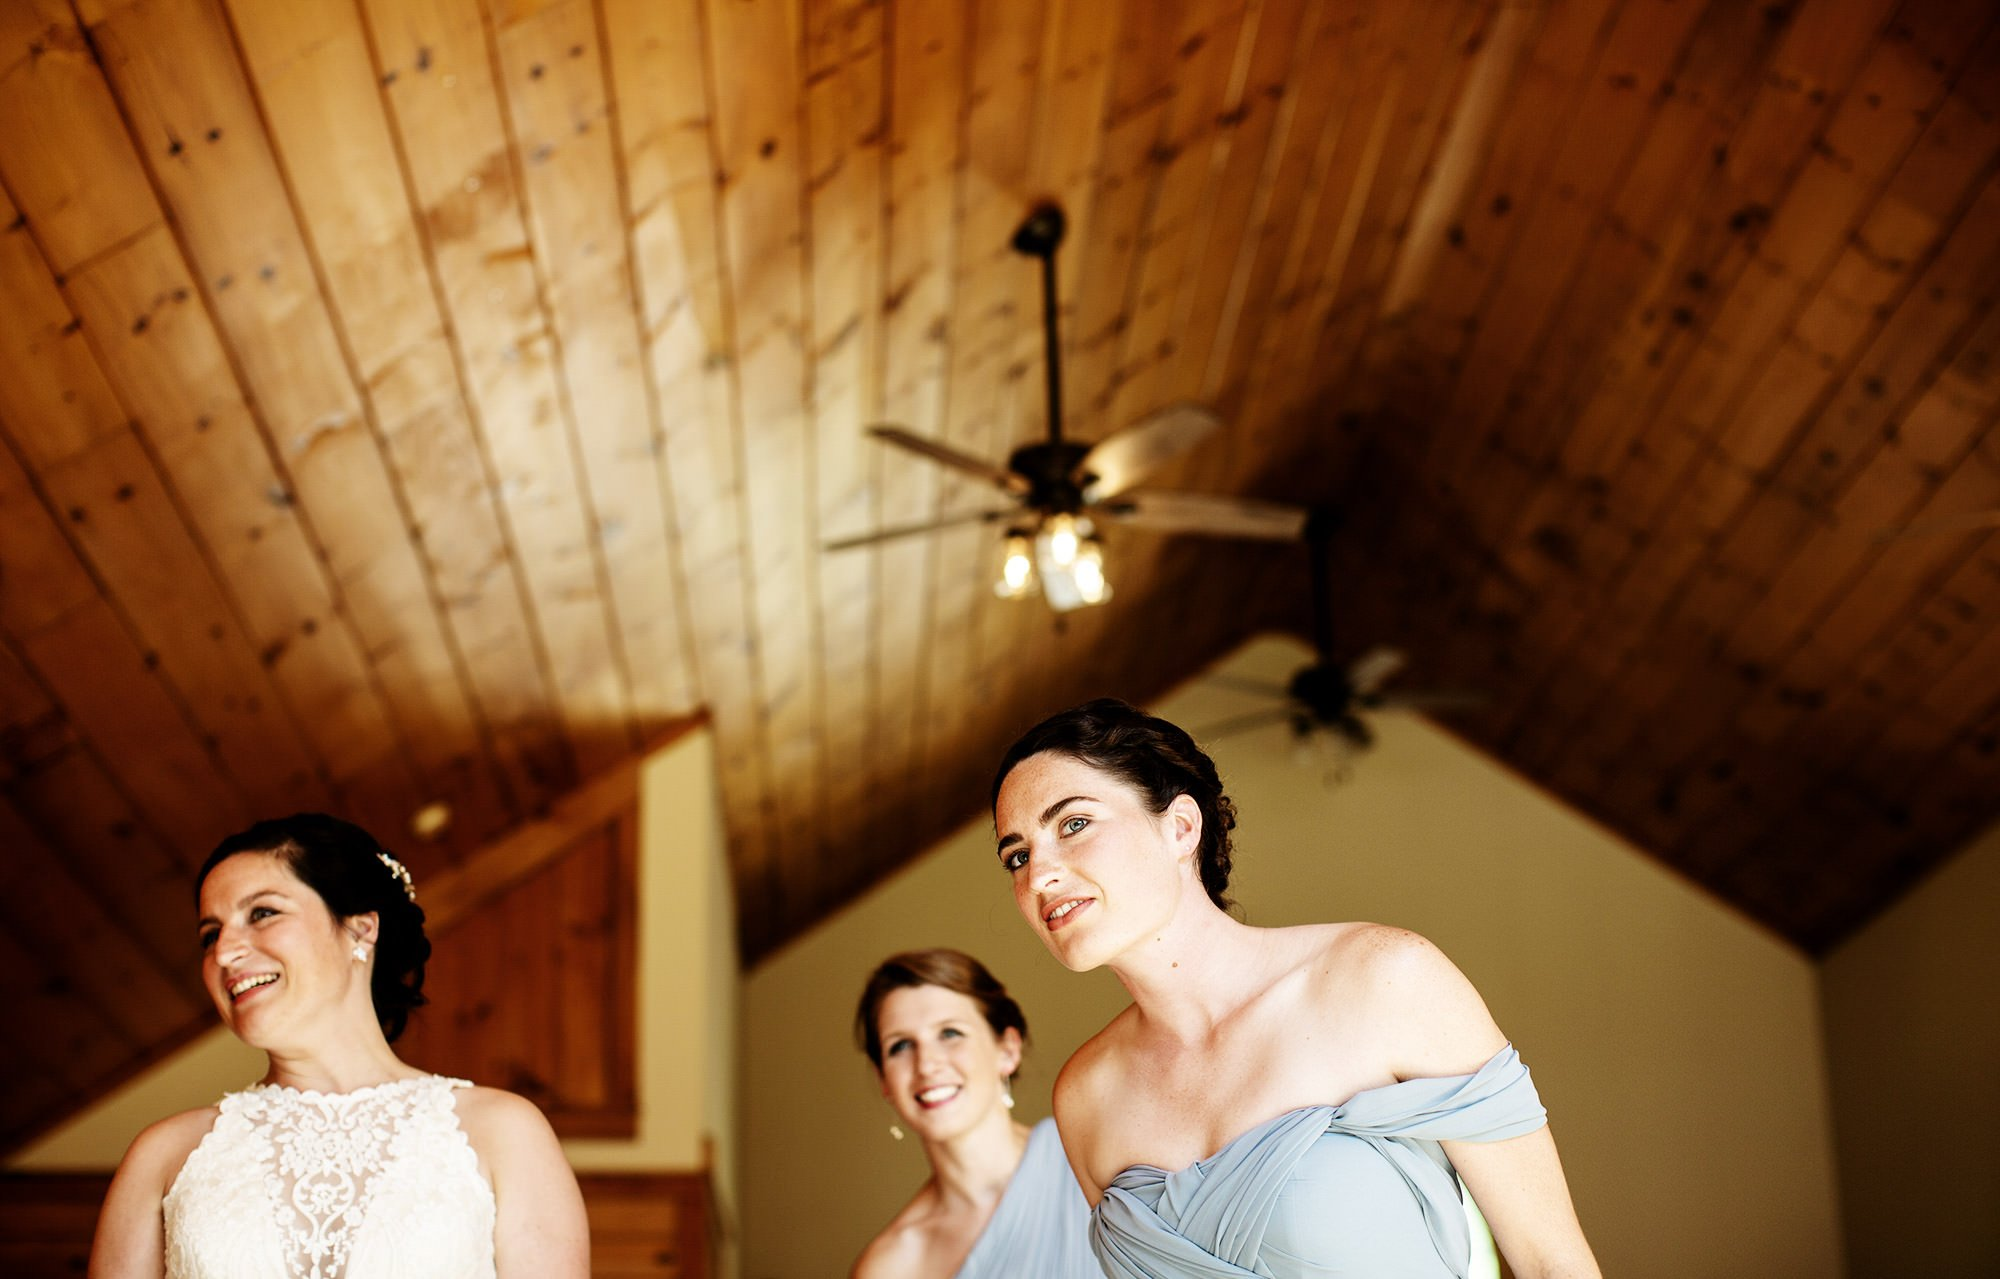 Maine Lakeside Cabin wedding  I  The bridesmaids watch as guests arrive for the wedding ceremony.